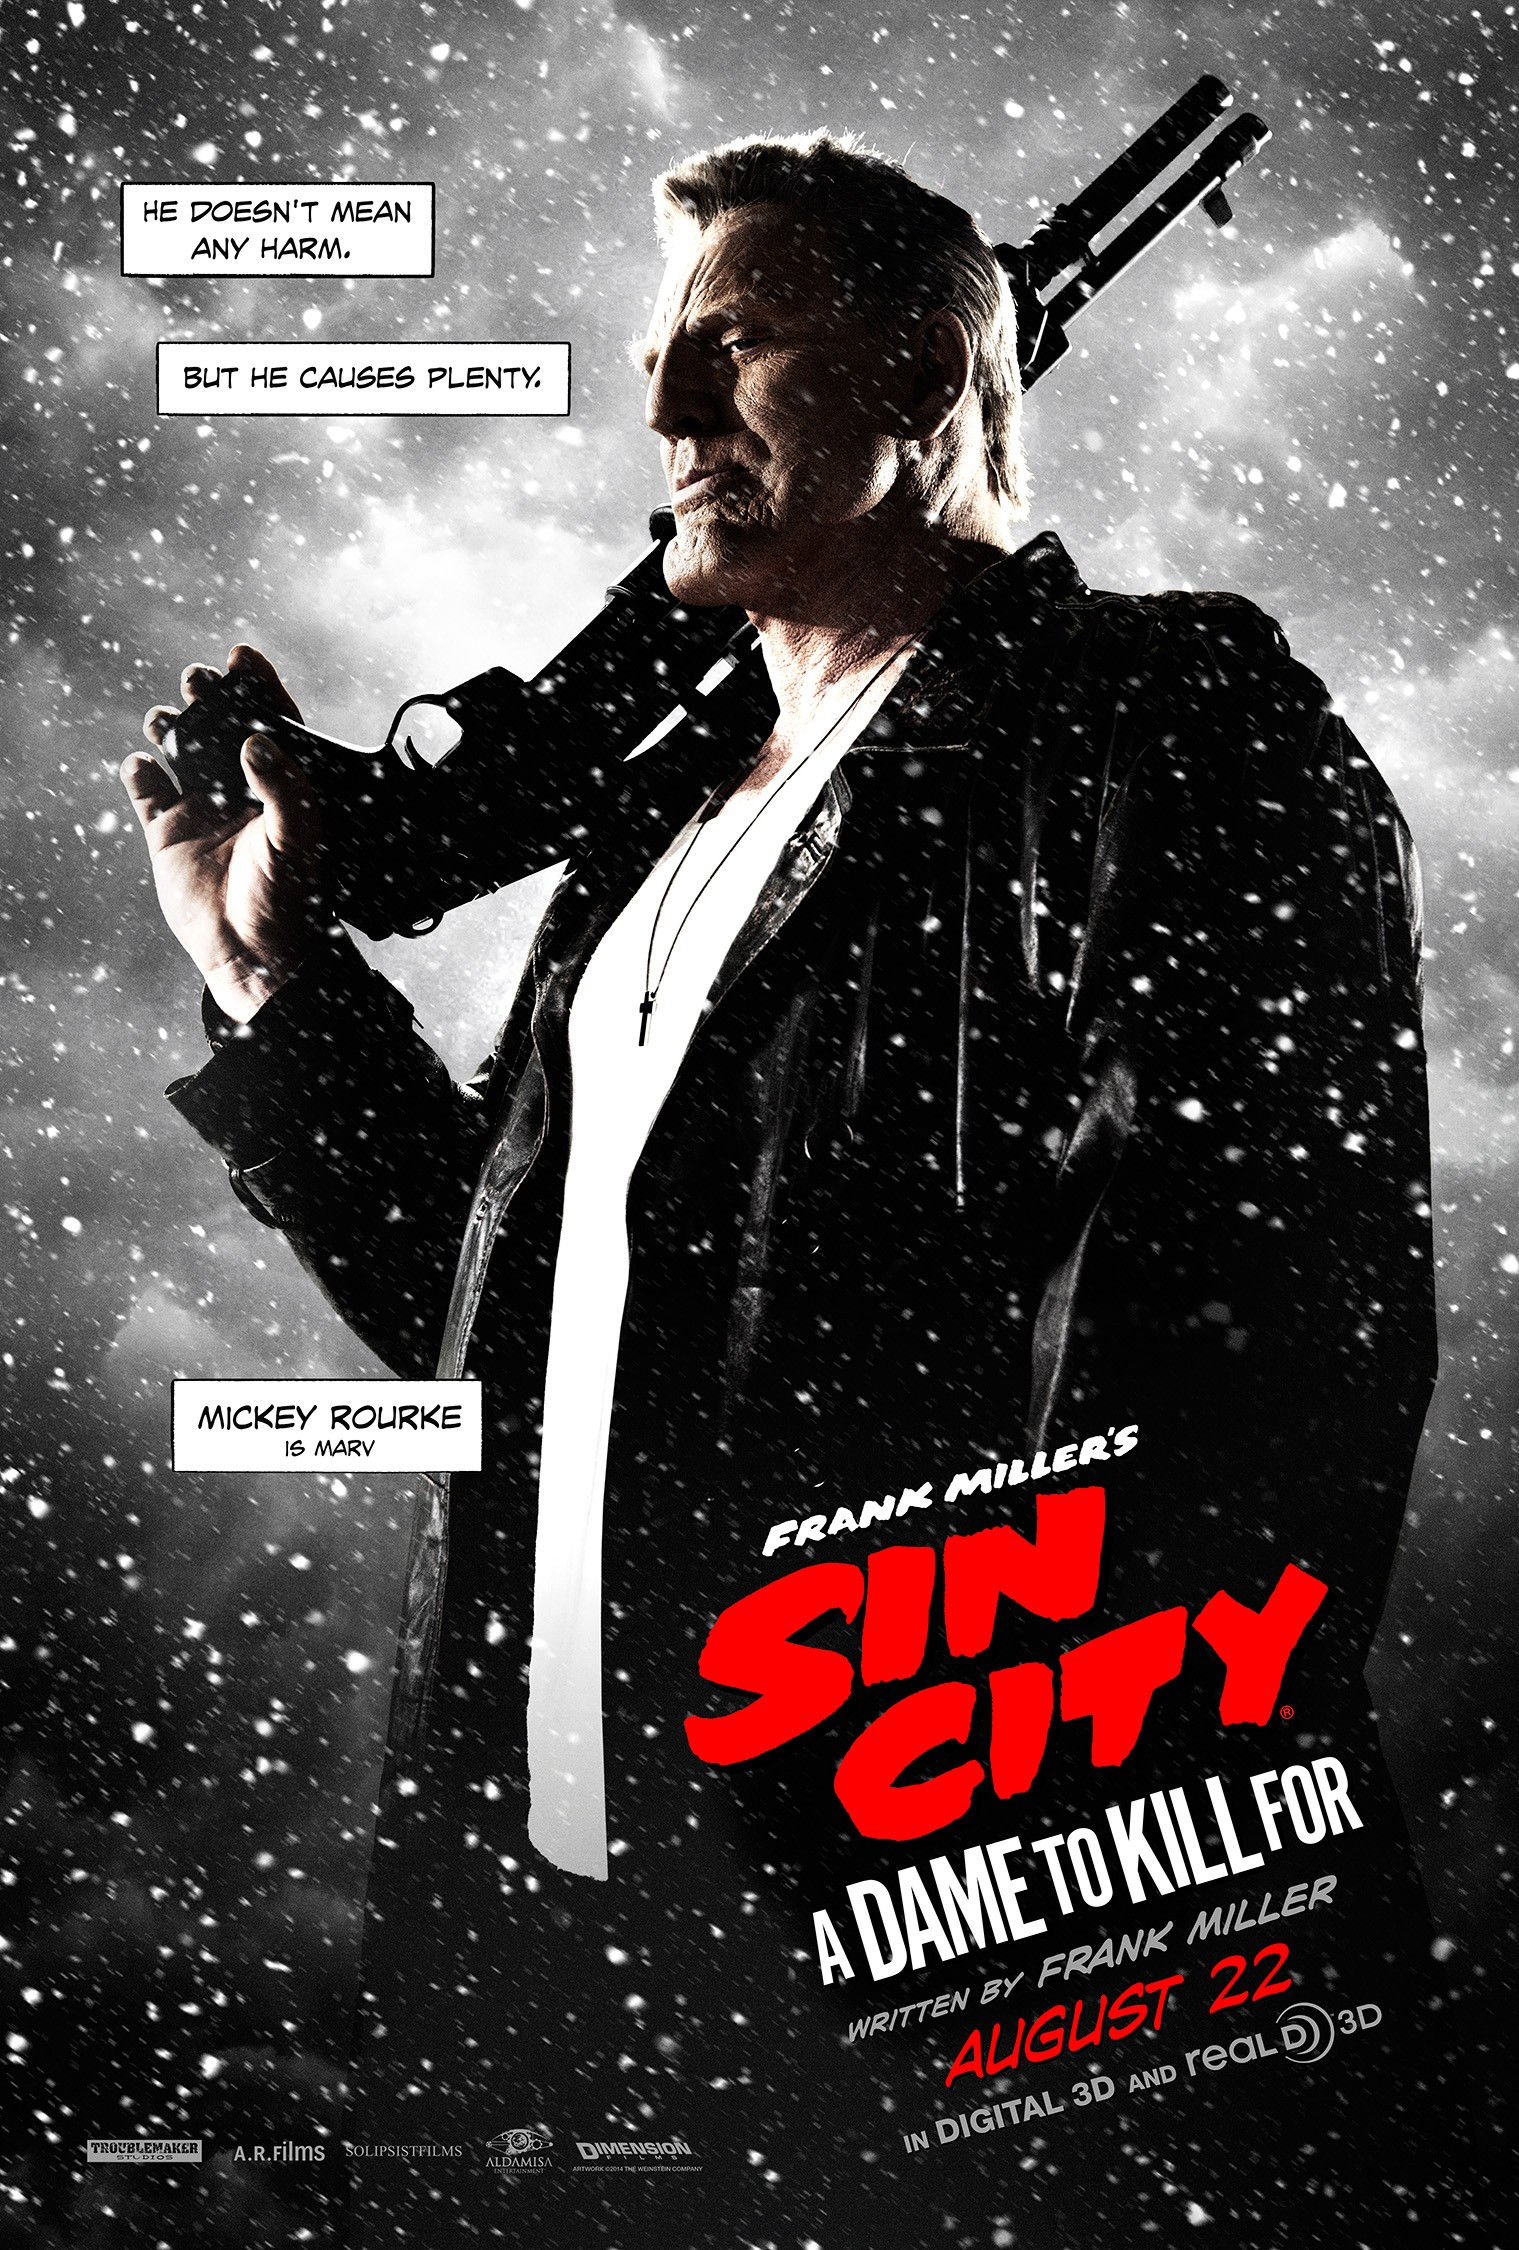 Sin City A Dame to Kill For-2-Official Poster Banner PROMO XXLG-22MAIO2014-03